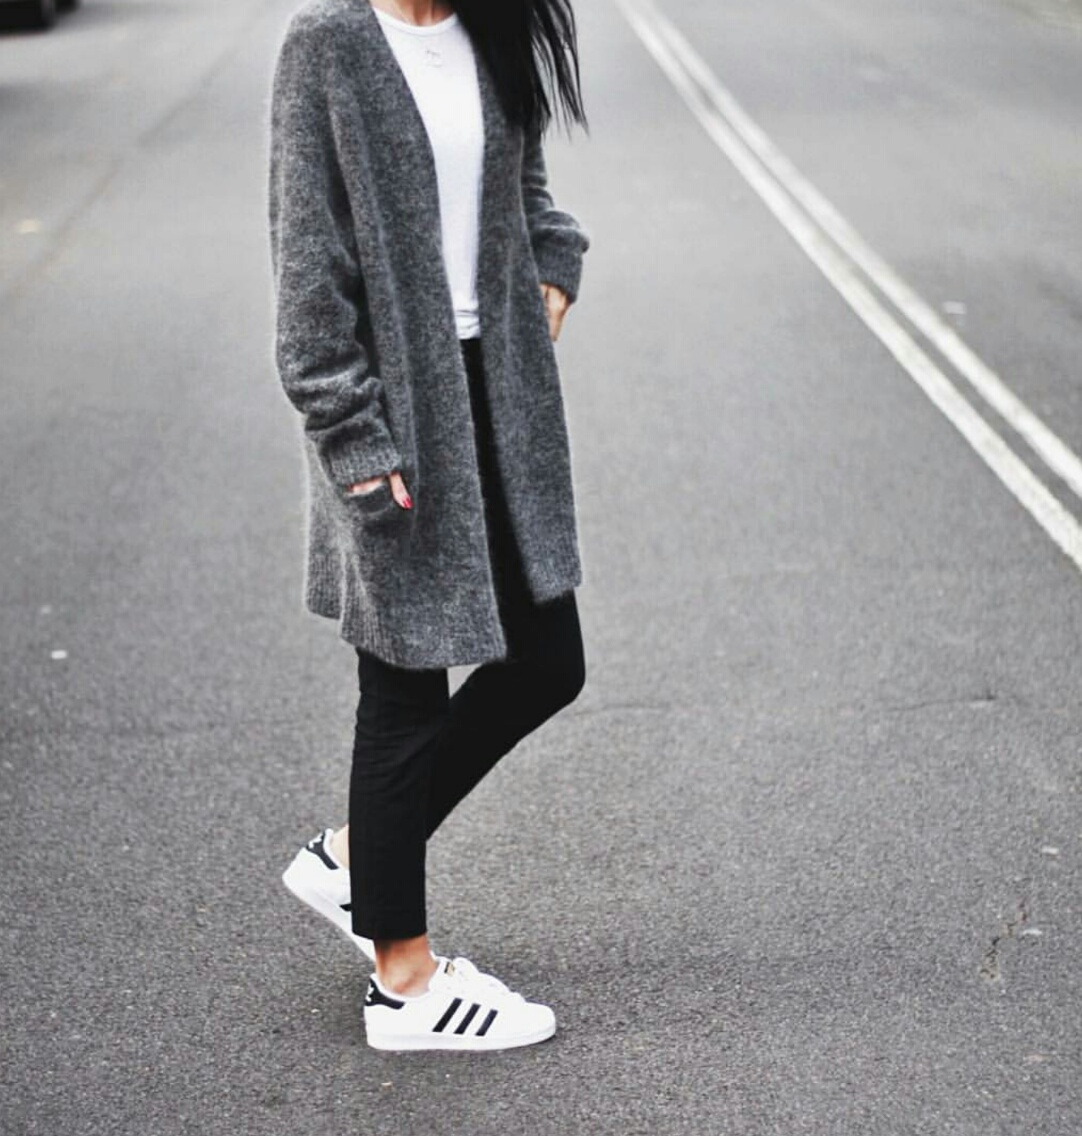 adidas, beauty, black, cardigan, chic, class, fashion, girl, girly, grey, knit, ootd, originals, outfit, pants, perfect, road, sport, style, superstar